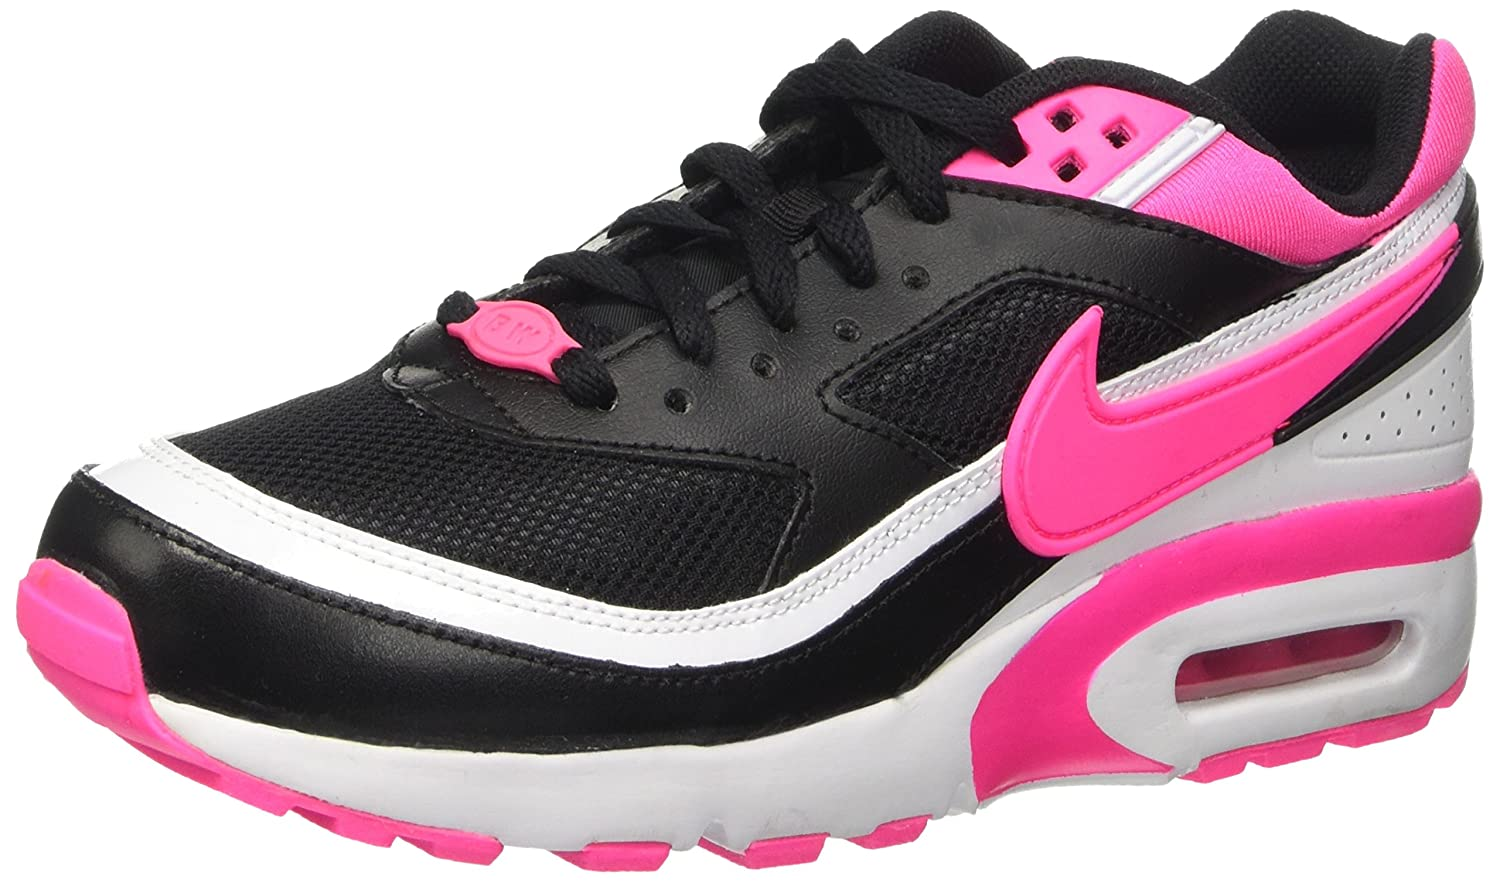 Nike Air Max BW (GS), Chaussures de Gymnastique Fille, BlackPink BlastWhite, 36 EU